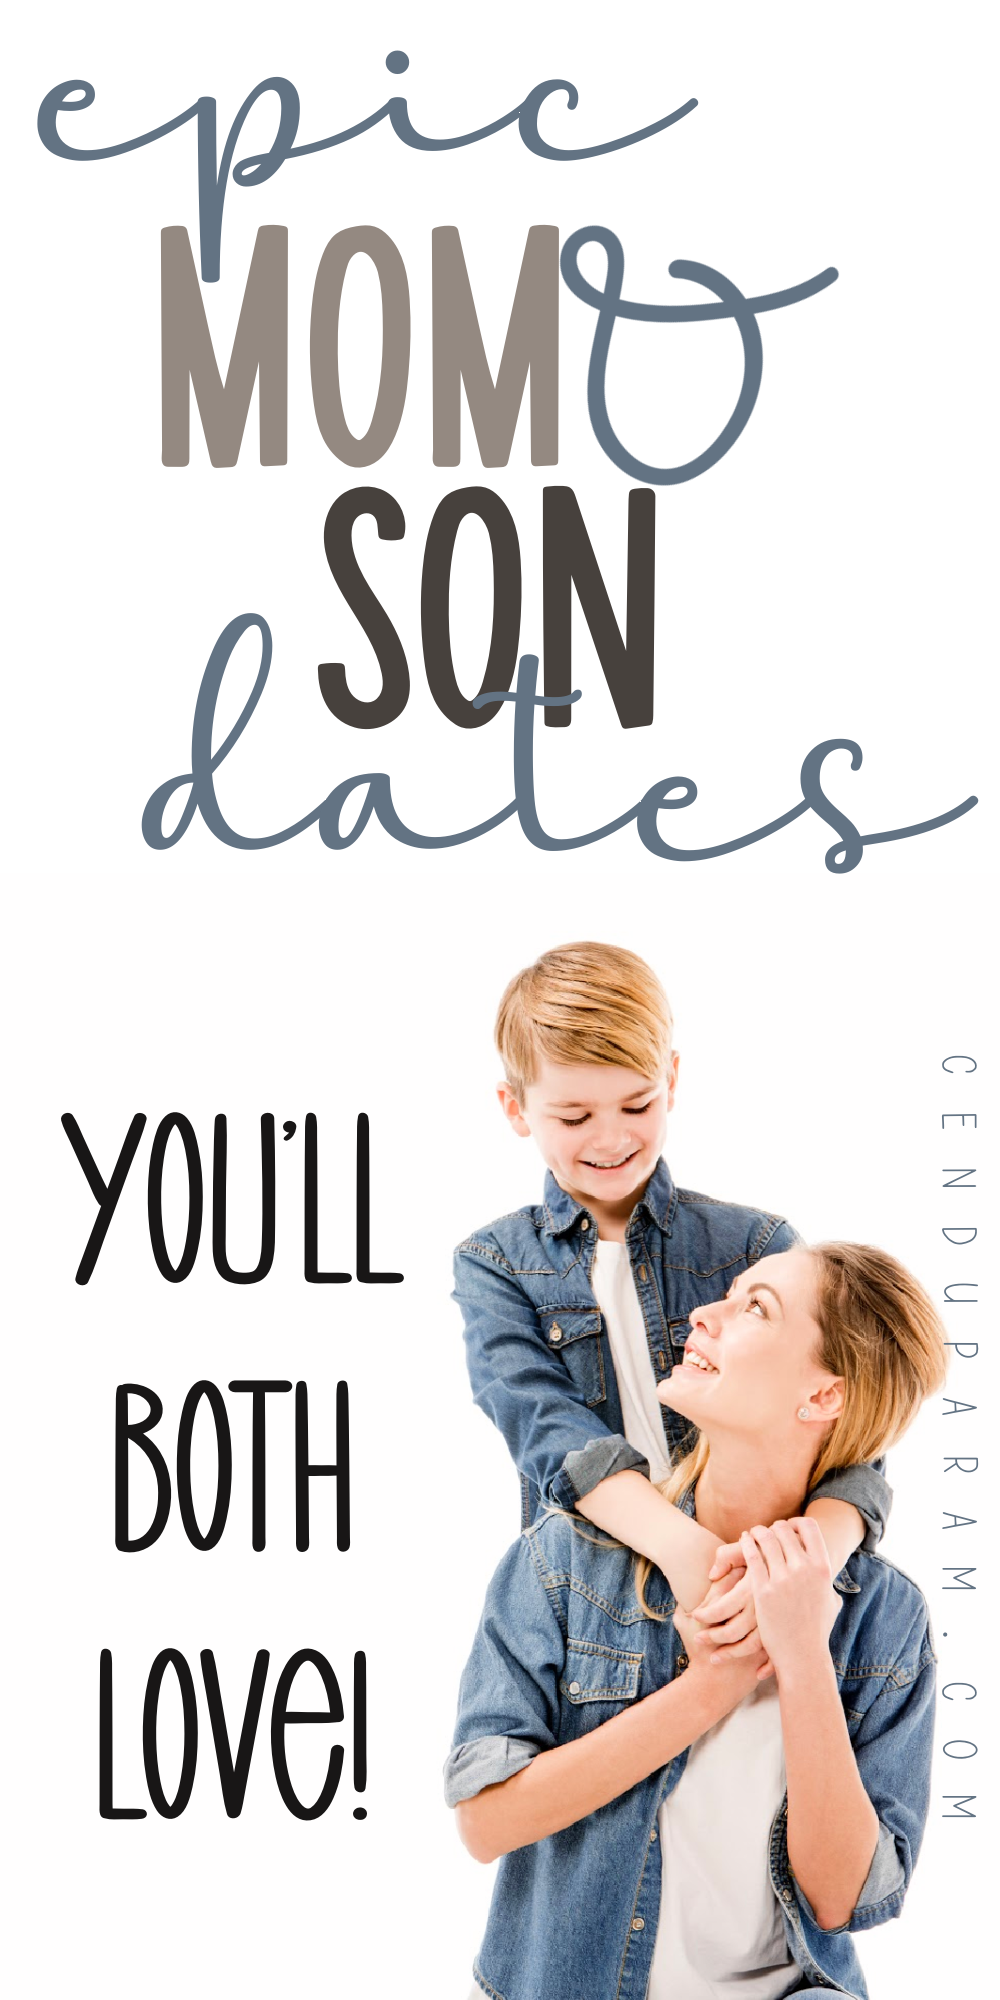 Fun Mom and Son Quality Time Date Ideas